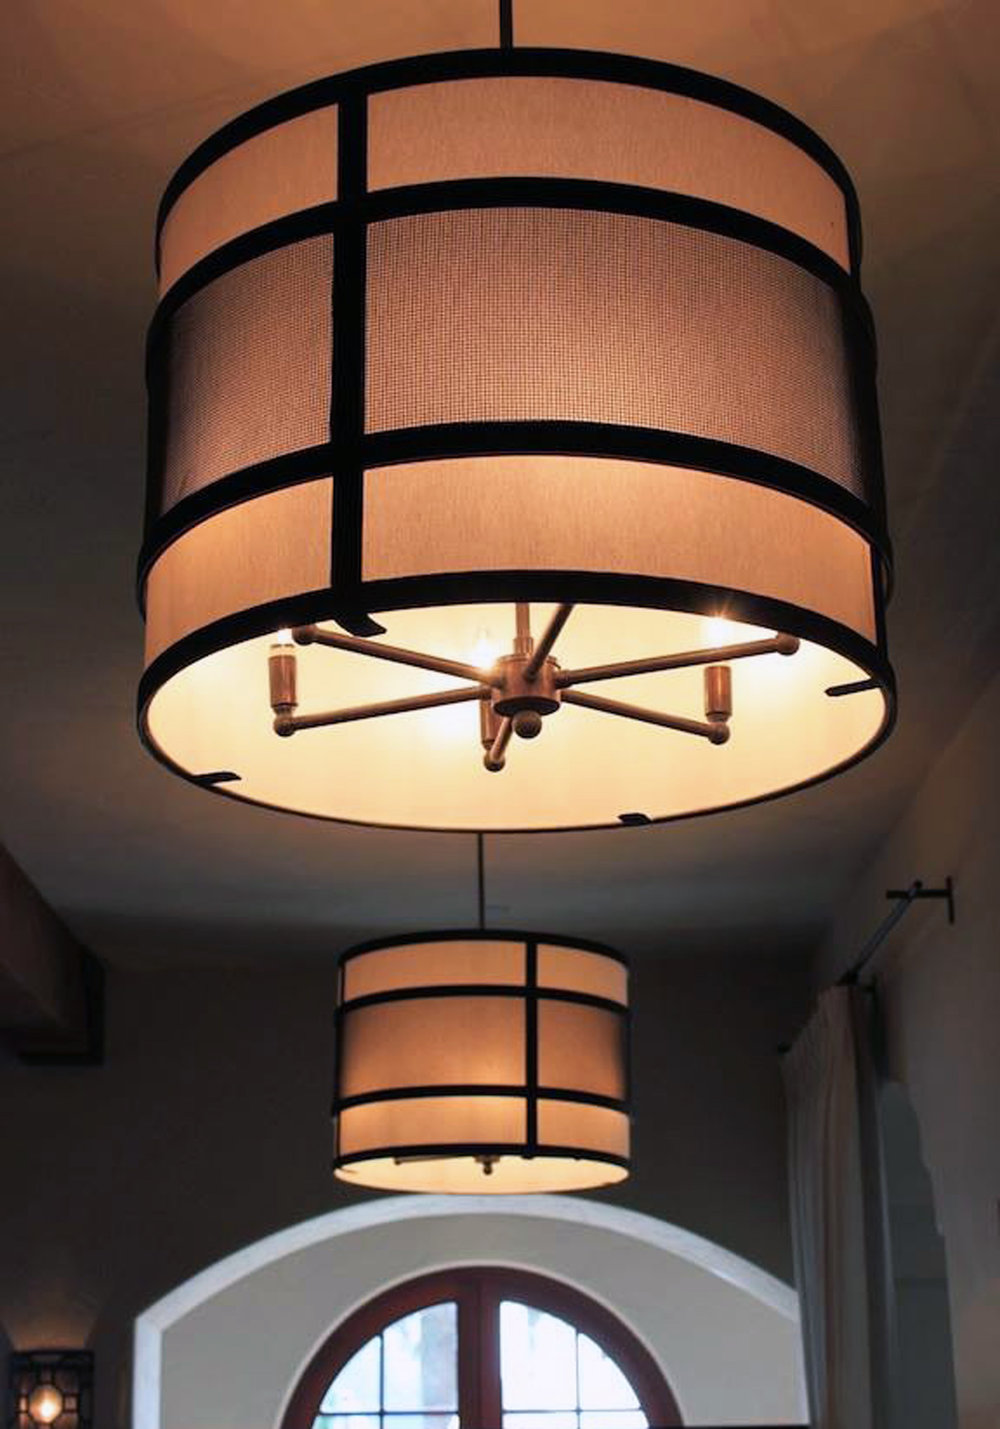 Custom Drum Chandelier in a Malibu country club.